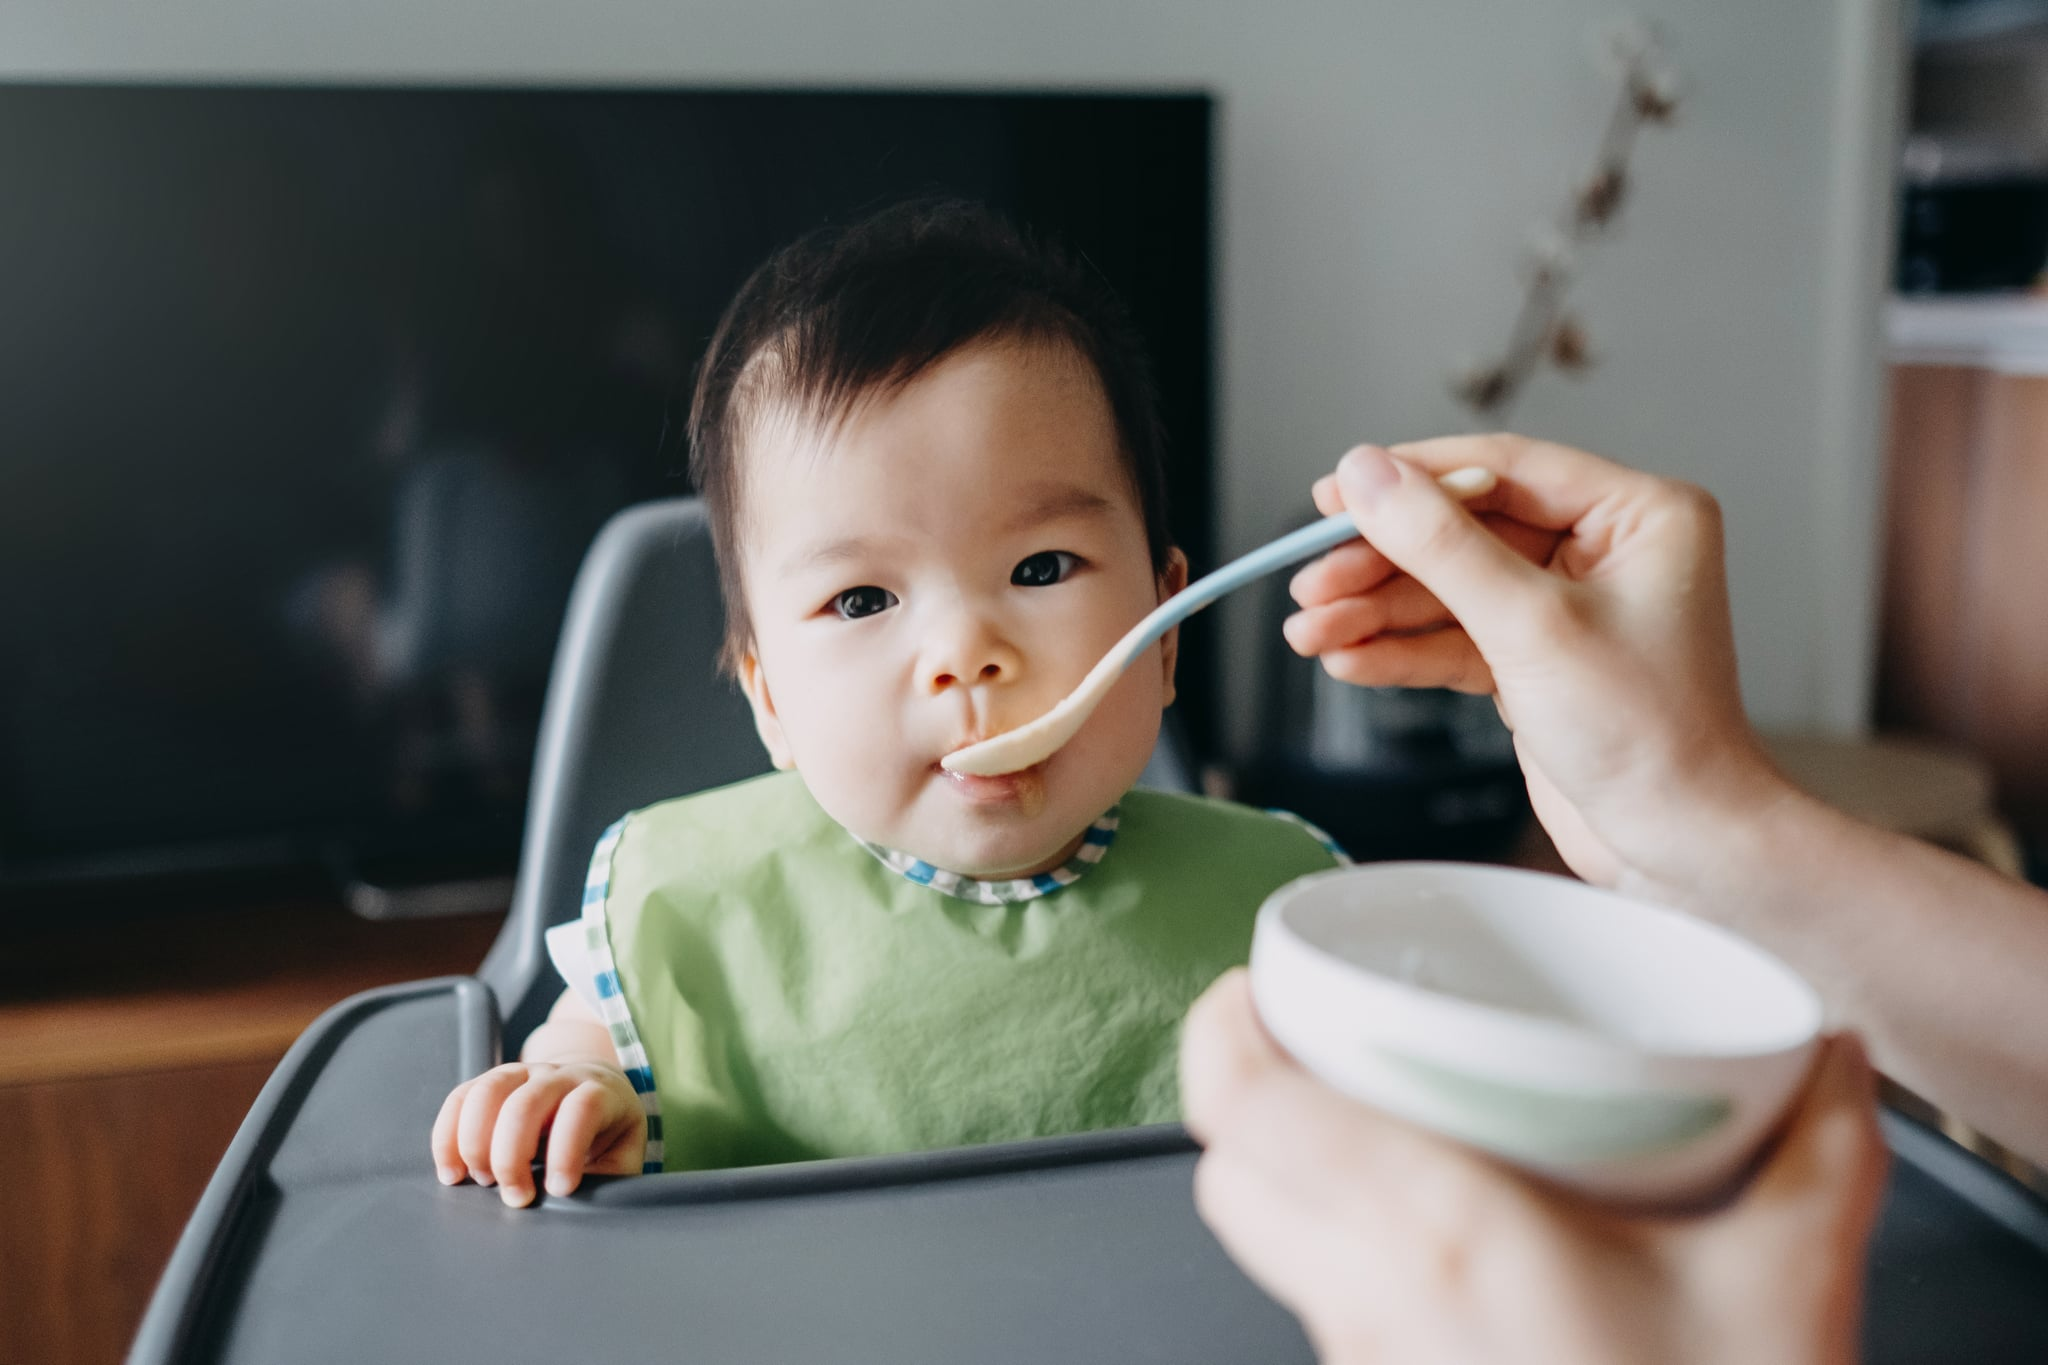 Mother's hand feeding baby girl food on high chair at home